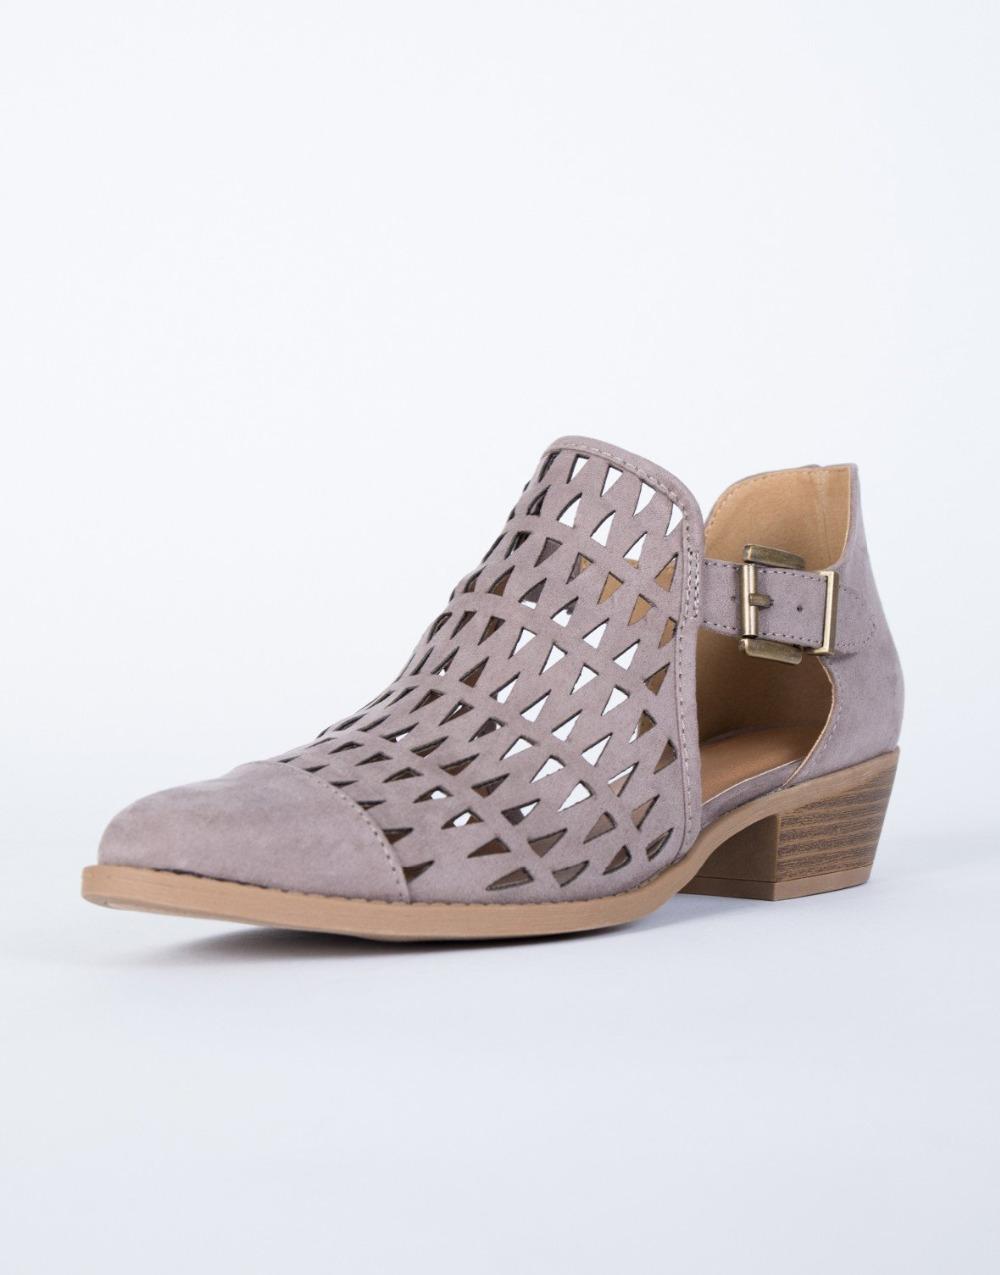 strapped-together-booties-light-taupe-2